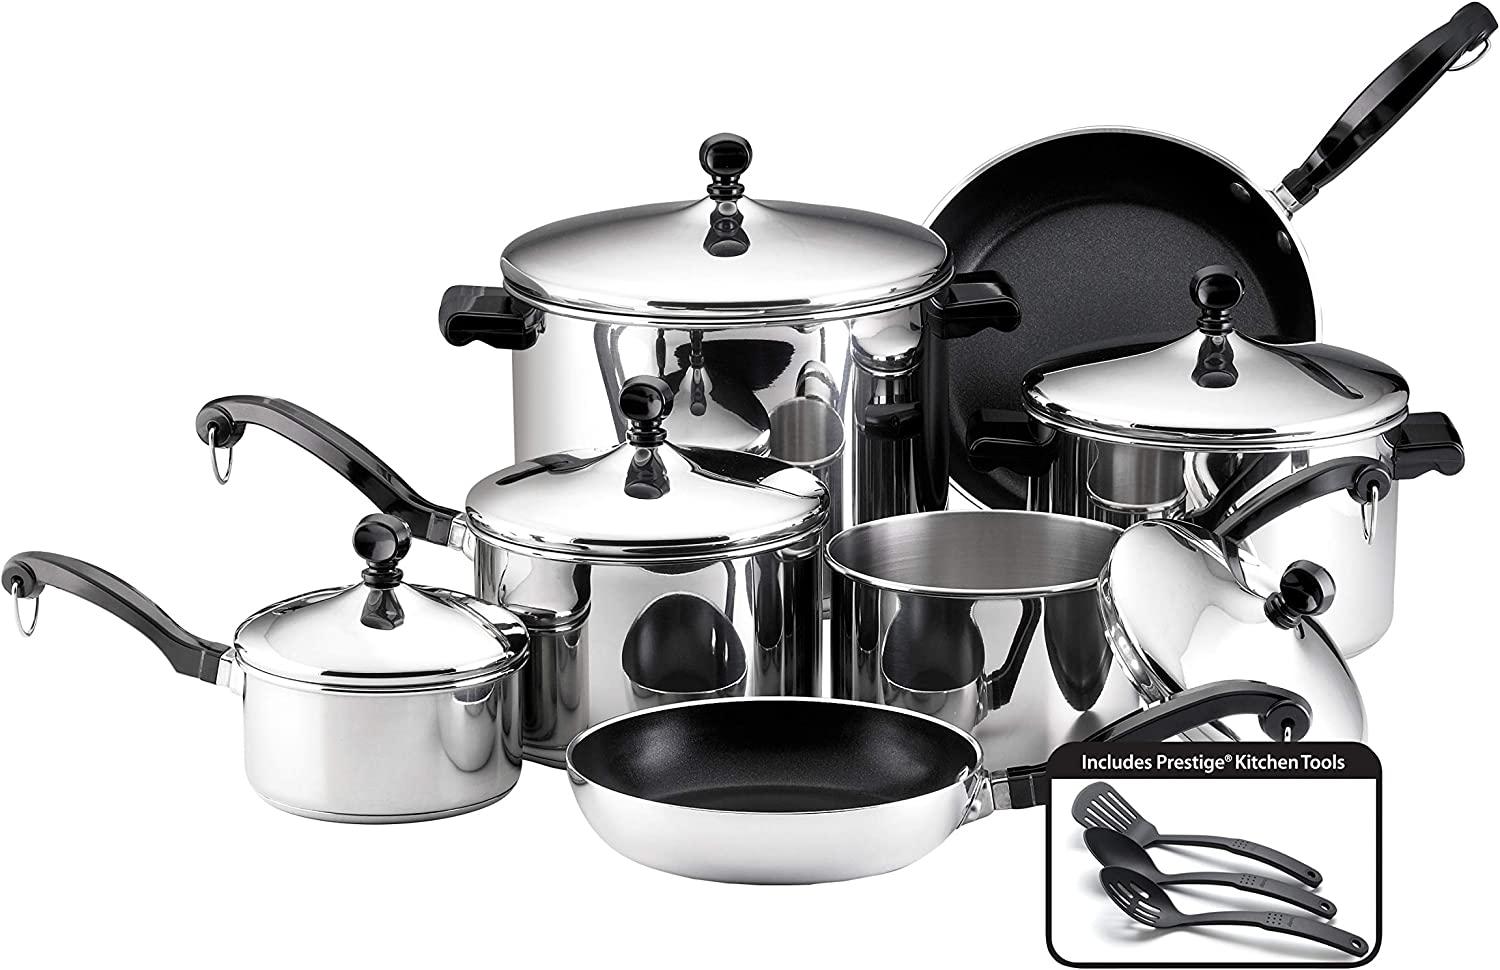 Farberware Classic 15-piece Stainless Steel Cookware Set